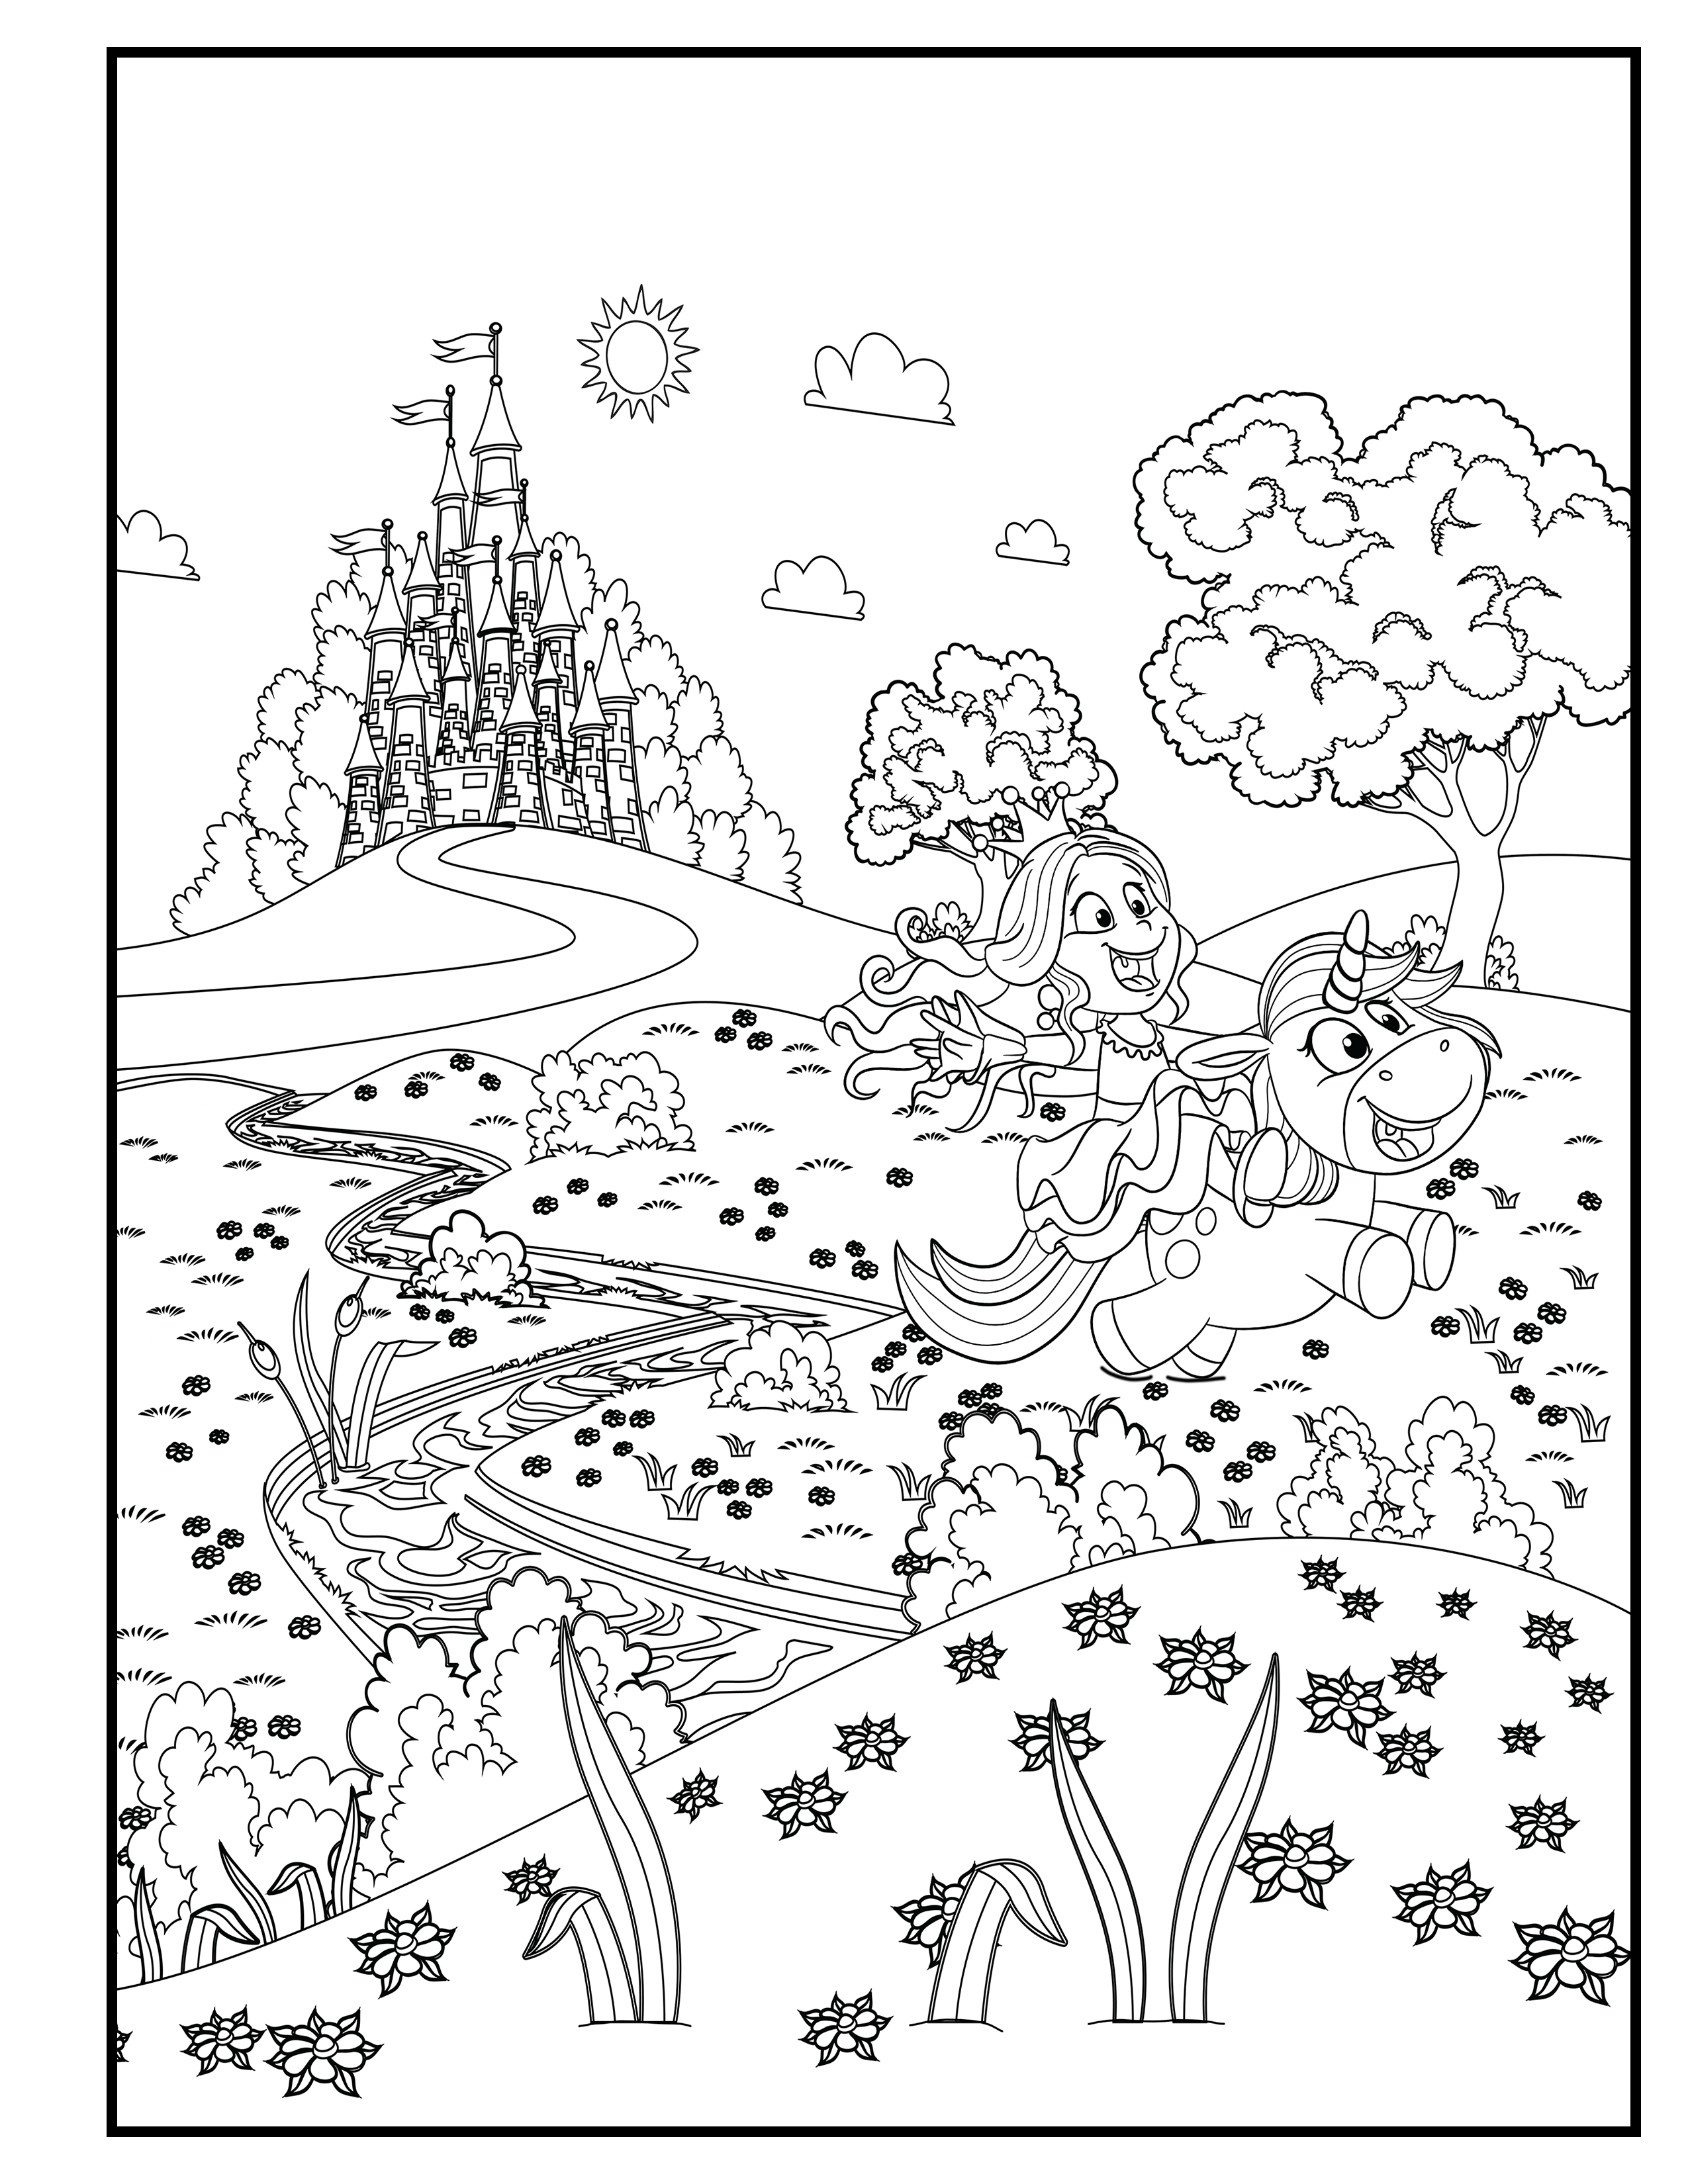 The Princess And Her Friend Are Playing On The Meadow Coloring Book For Princesses Unicorn Colori Fairy Coloring Book Princess Coloring Pages Coloring Books